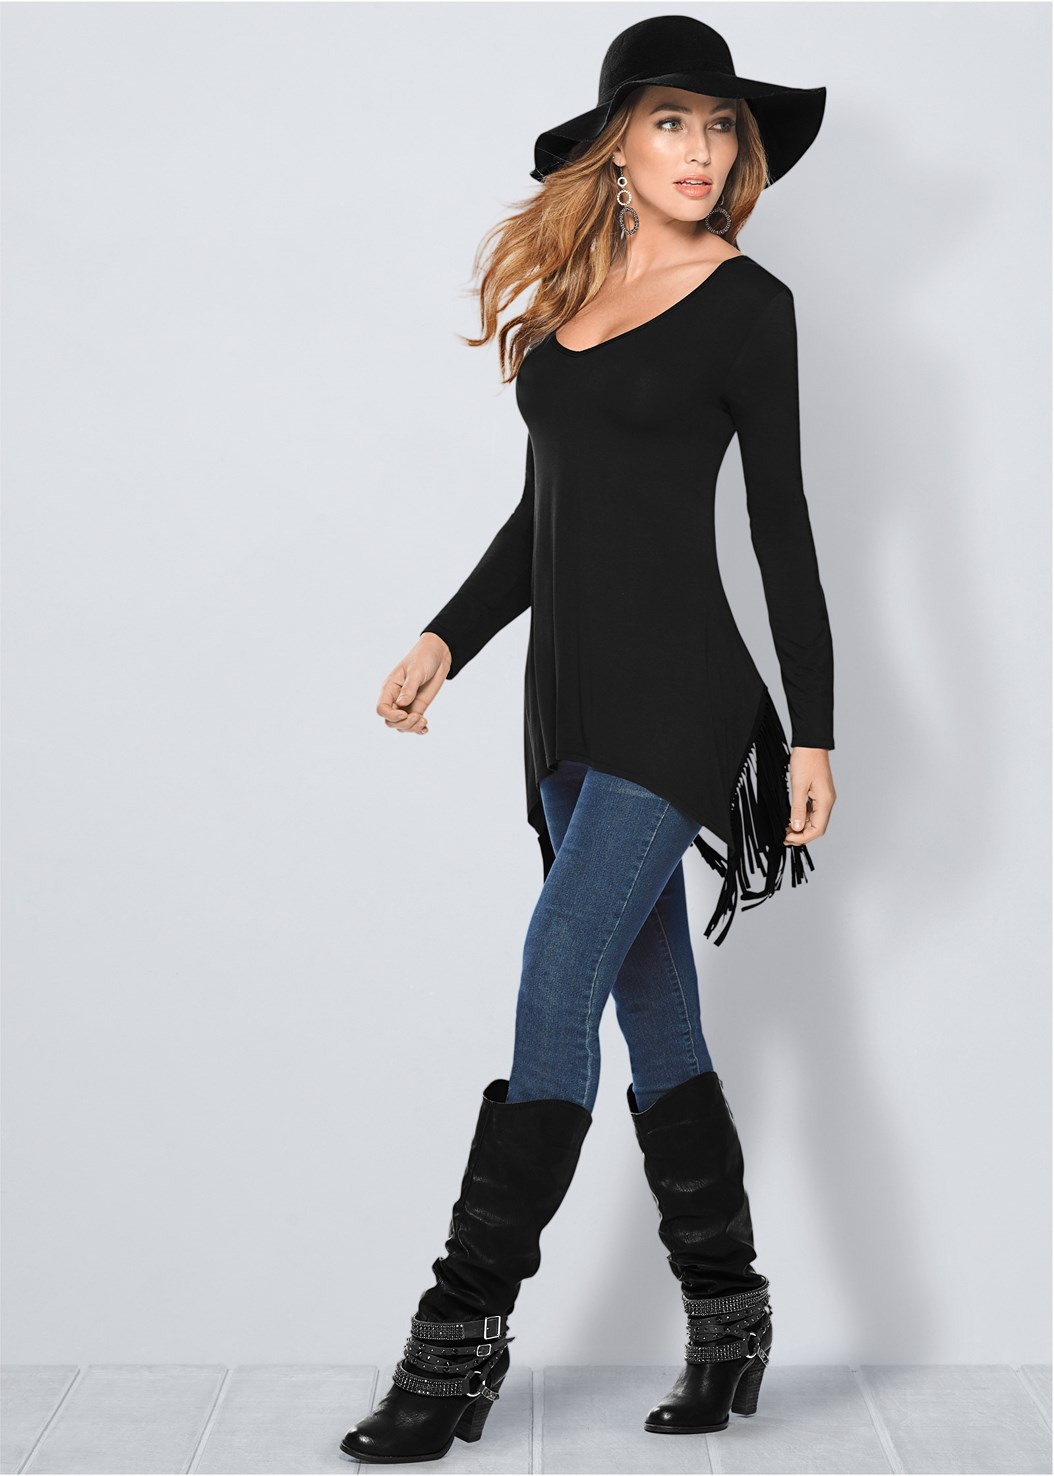 Fringe Detail Tunic Top,Mid Rise Color Skinny Jeans,Stud Detail Crossbody